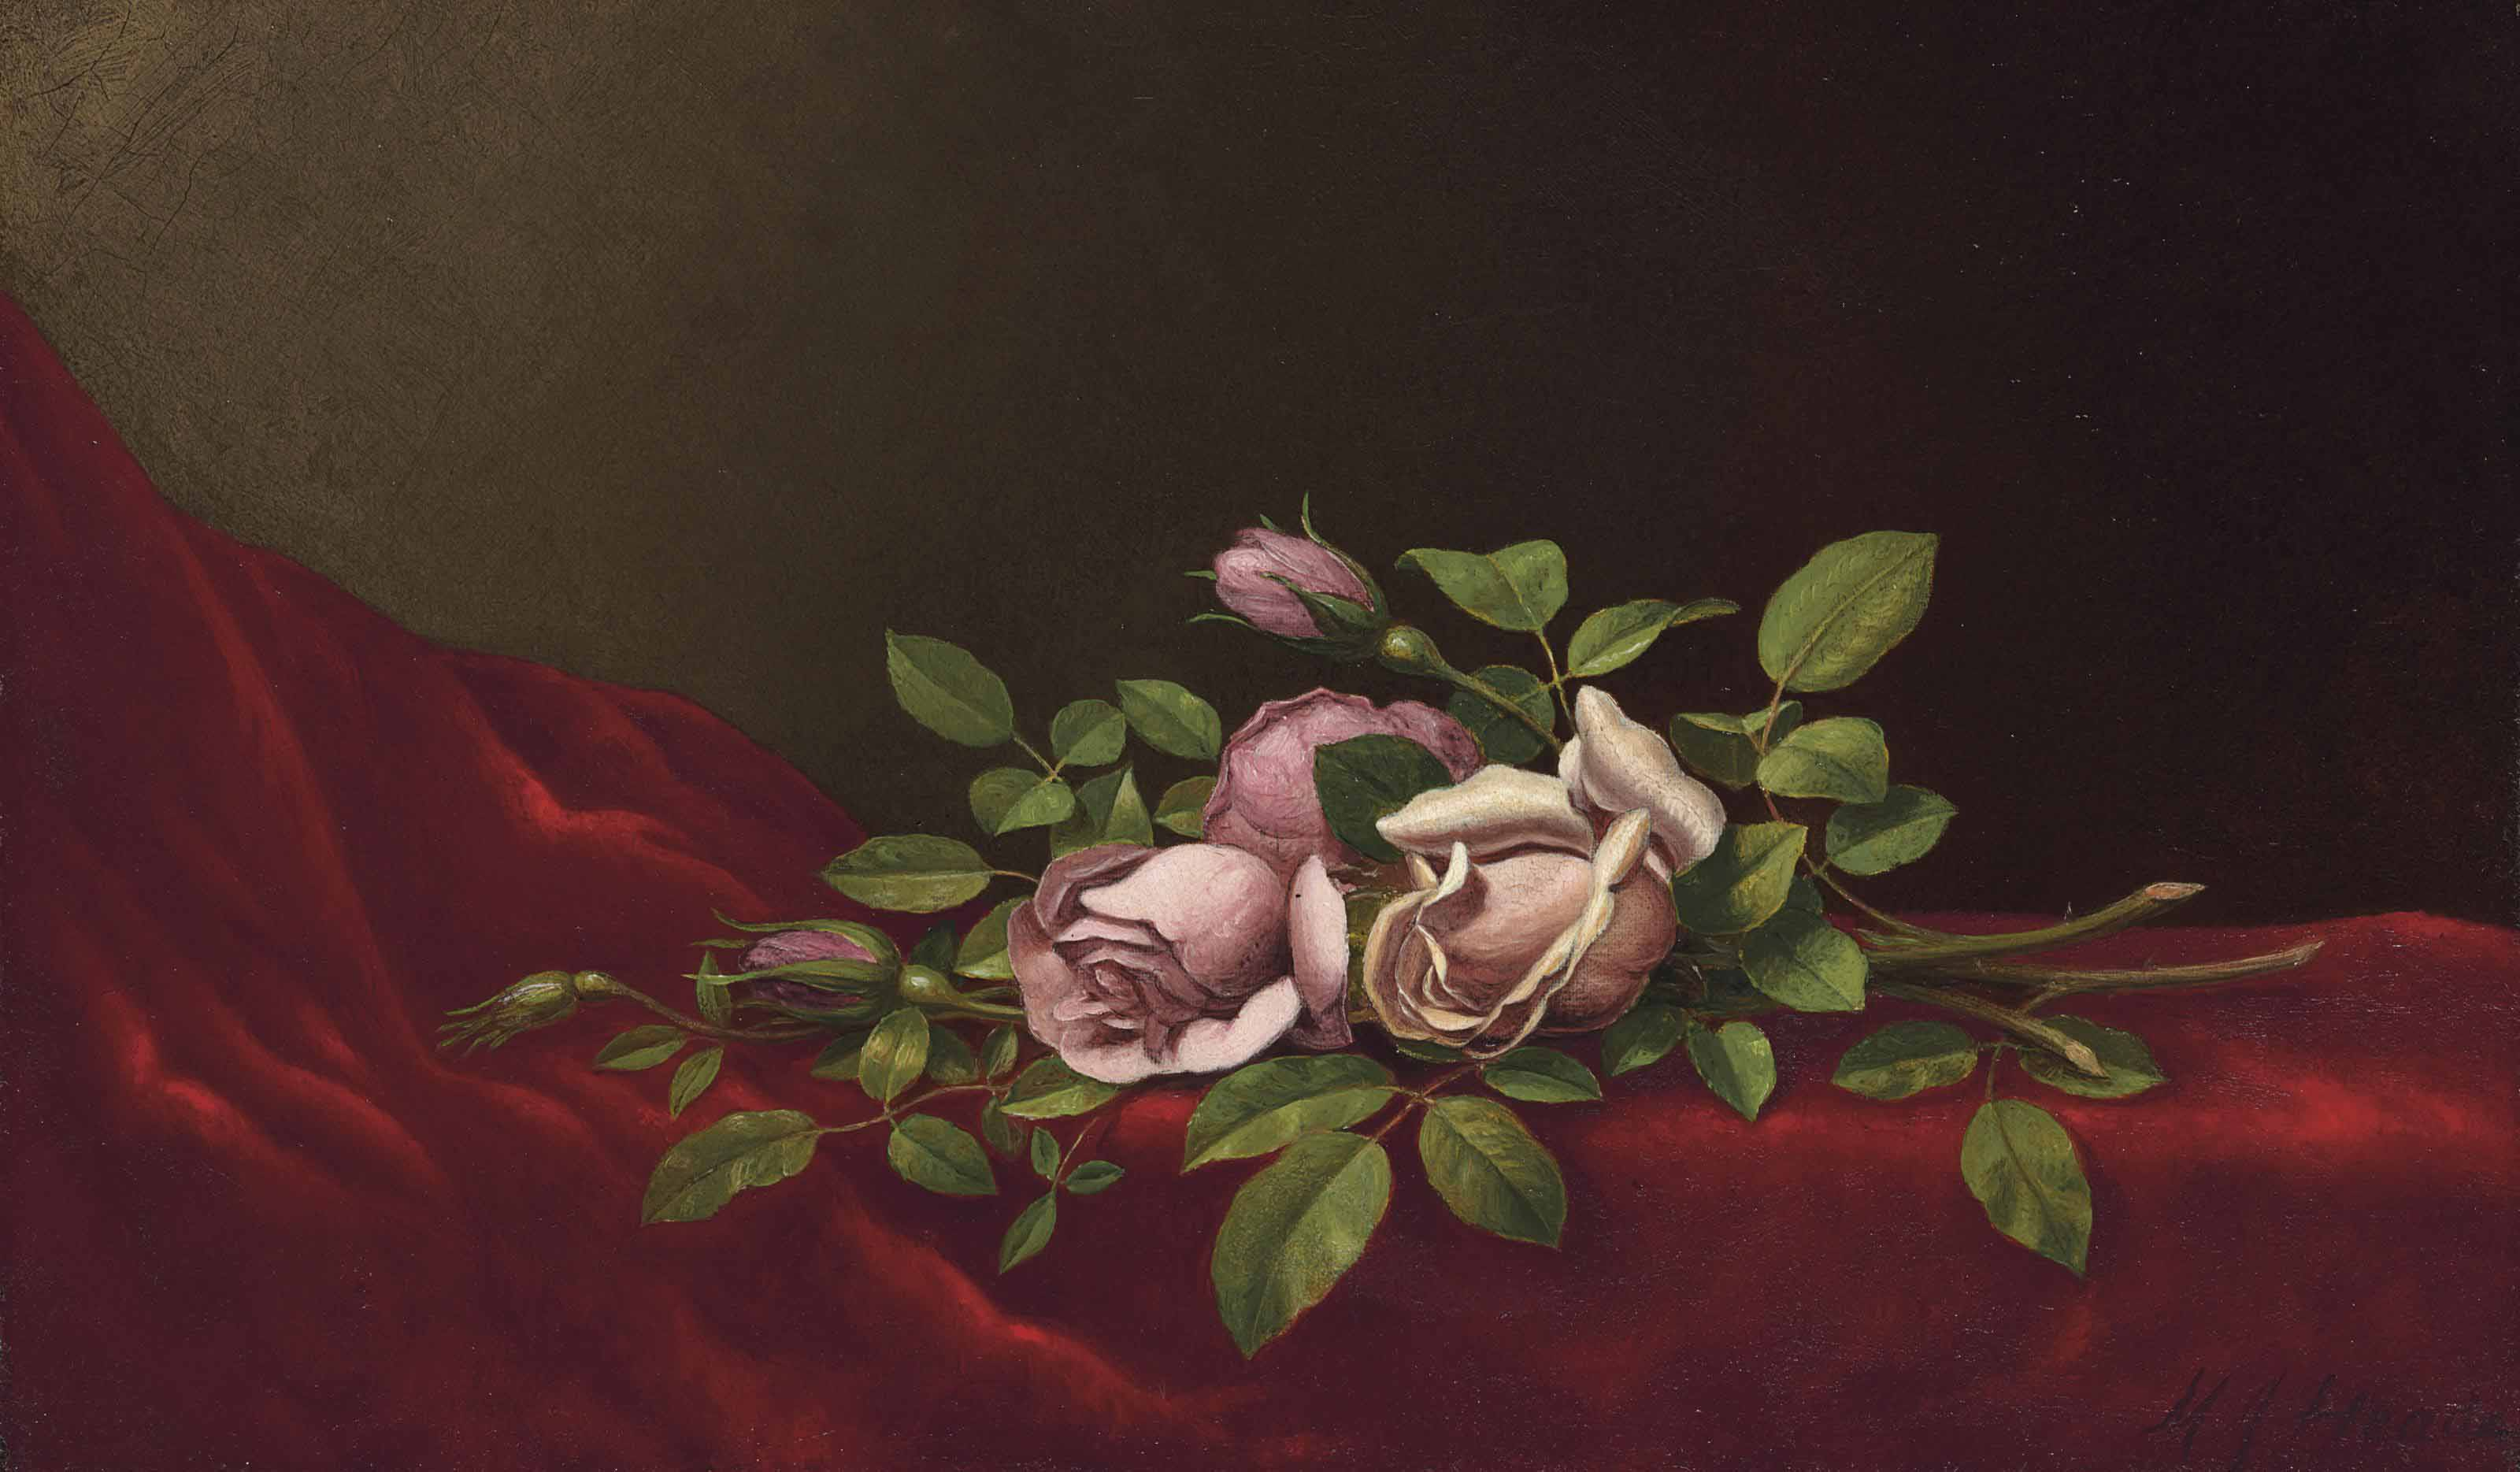 Pink Roses on a Red Cloth